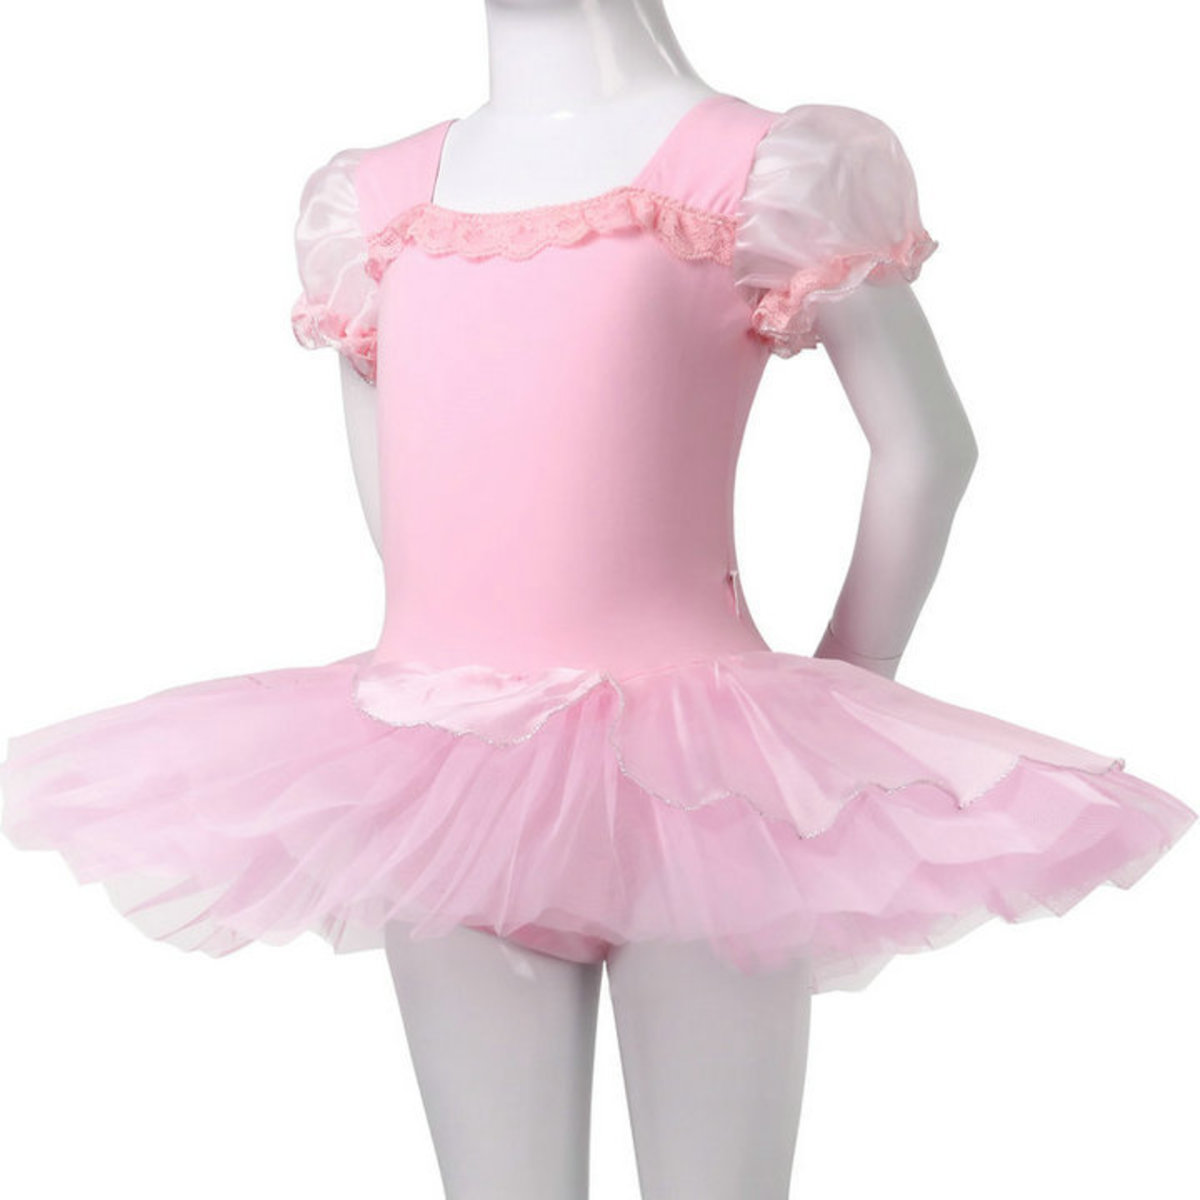 Pink Tutu for my young Ballet Dancer